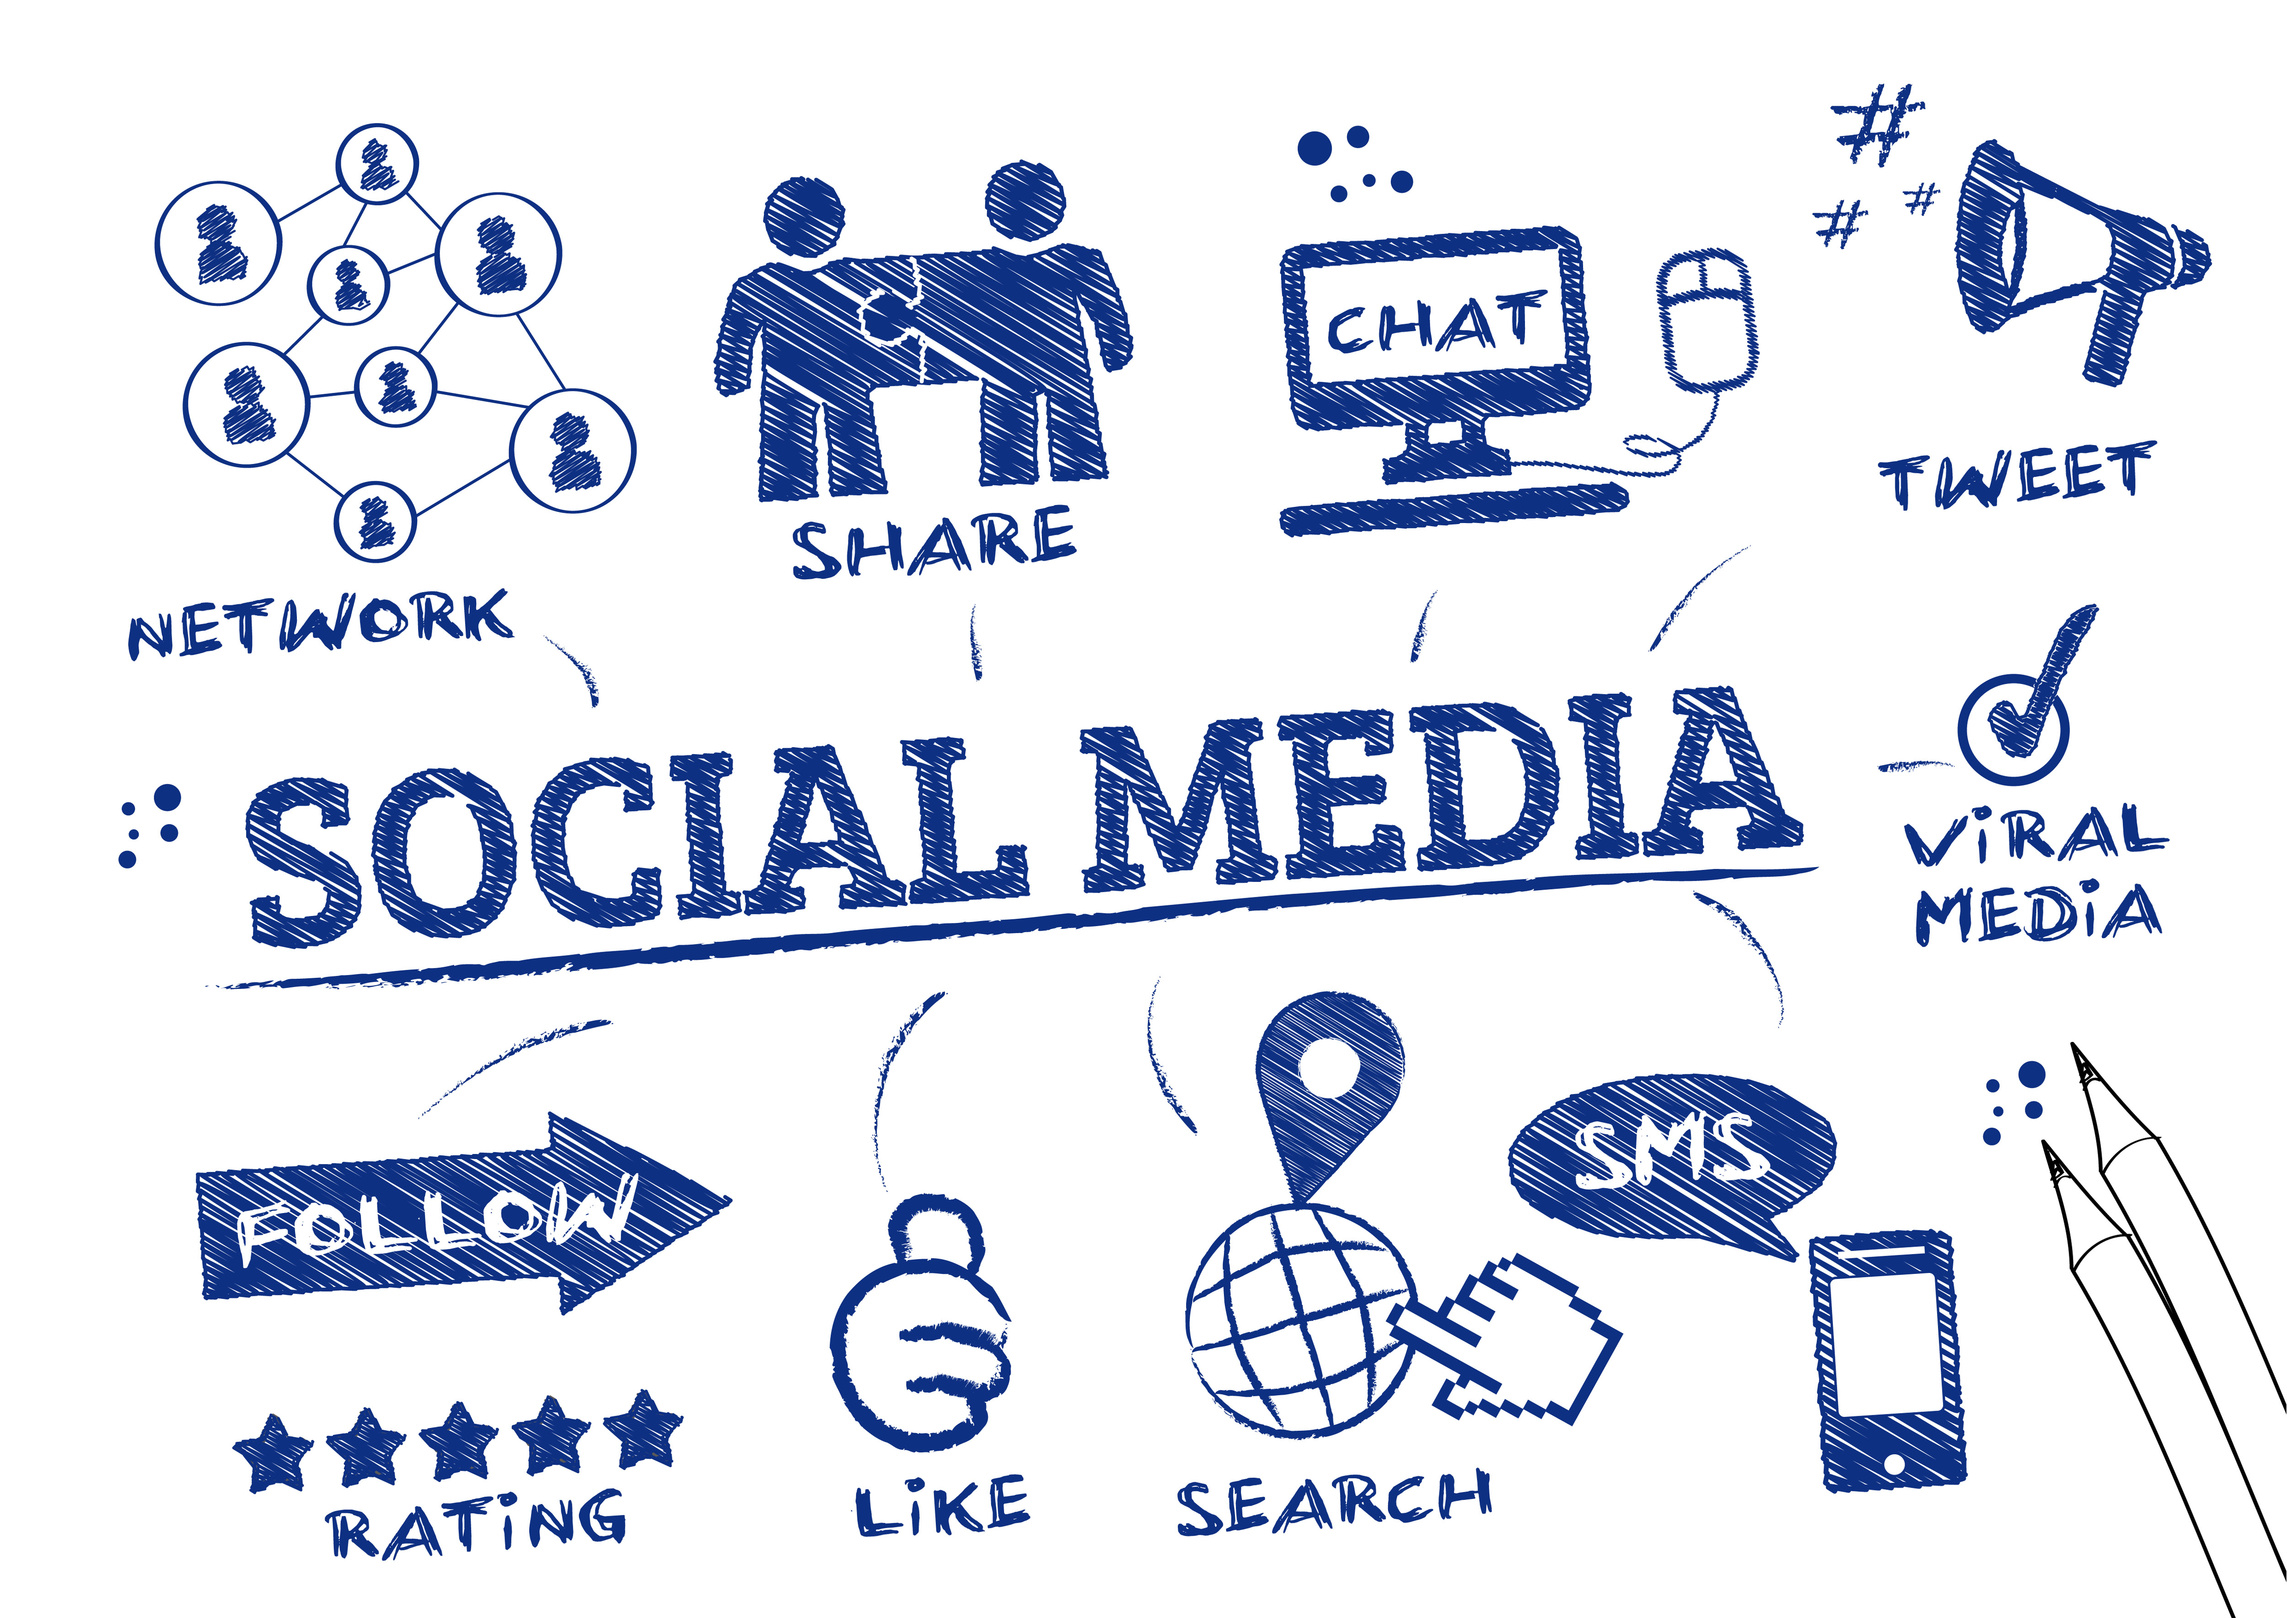 Social media has become a catalyst to change